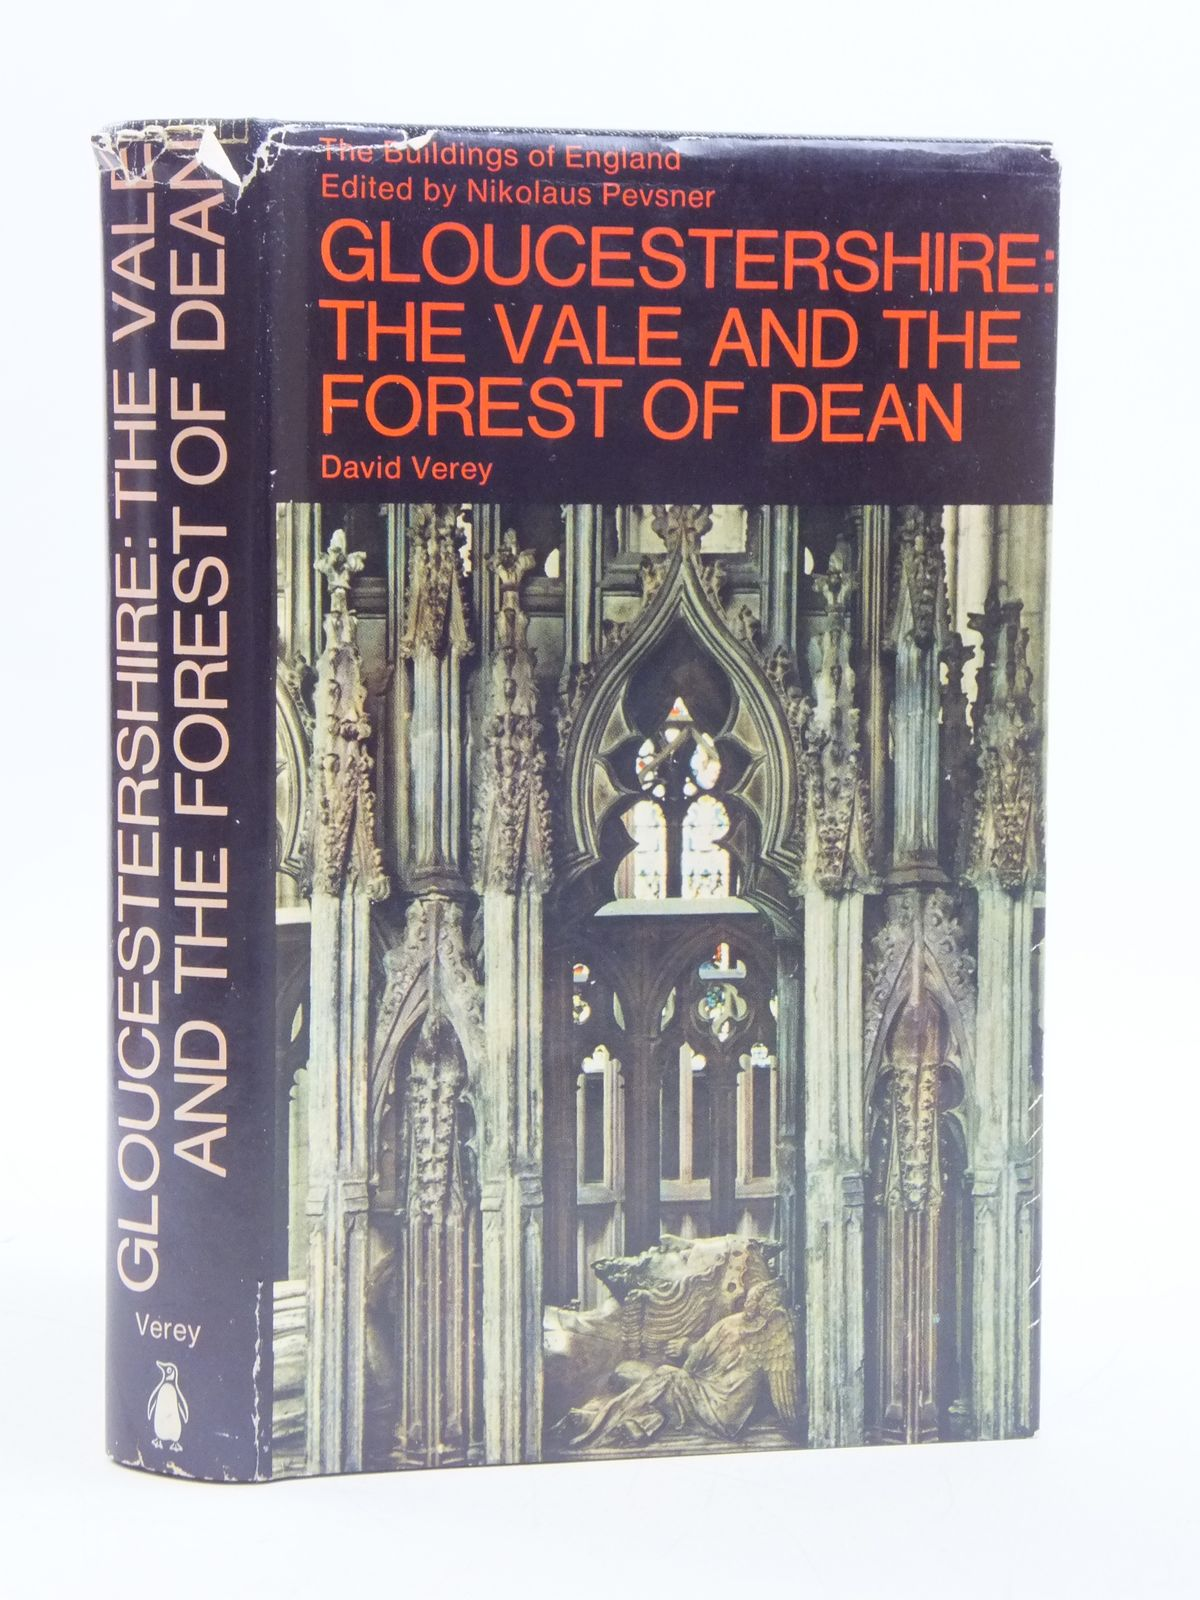 Photo of GLOUCESTERSHIRE 2: THE VALE AND THE FOREST OF DEAN (BUILDINGS OF ENGLAND)